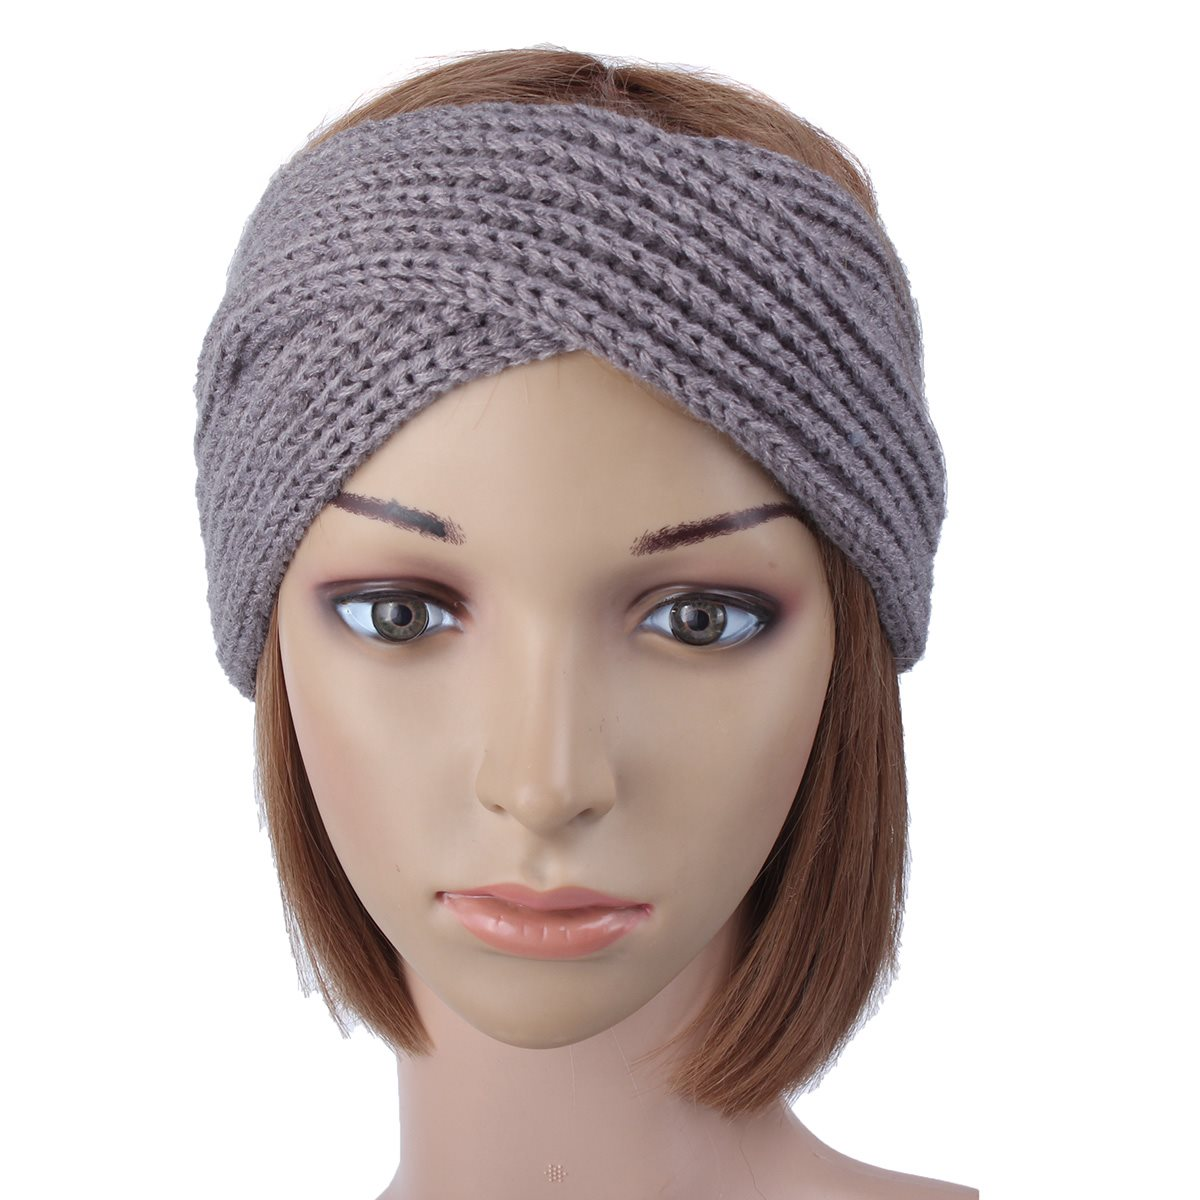 Women Crochet Wool Knit Cross-tie Headband Elastic Warm Turban Headbands  For Women Headband Knitted Hijab Hair Accessories NEW 0df91b2ad26